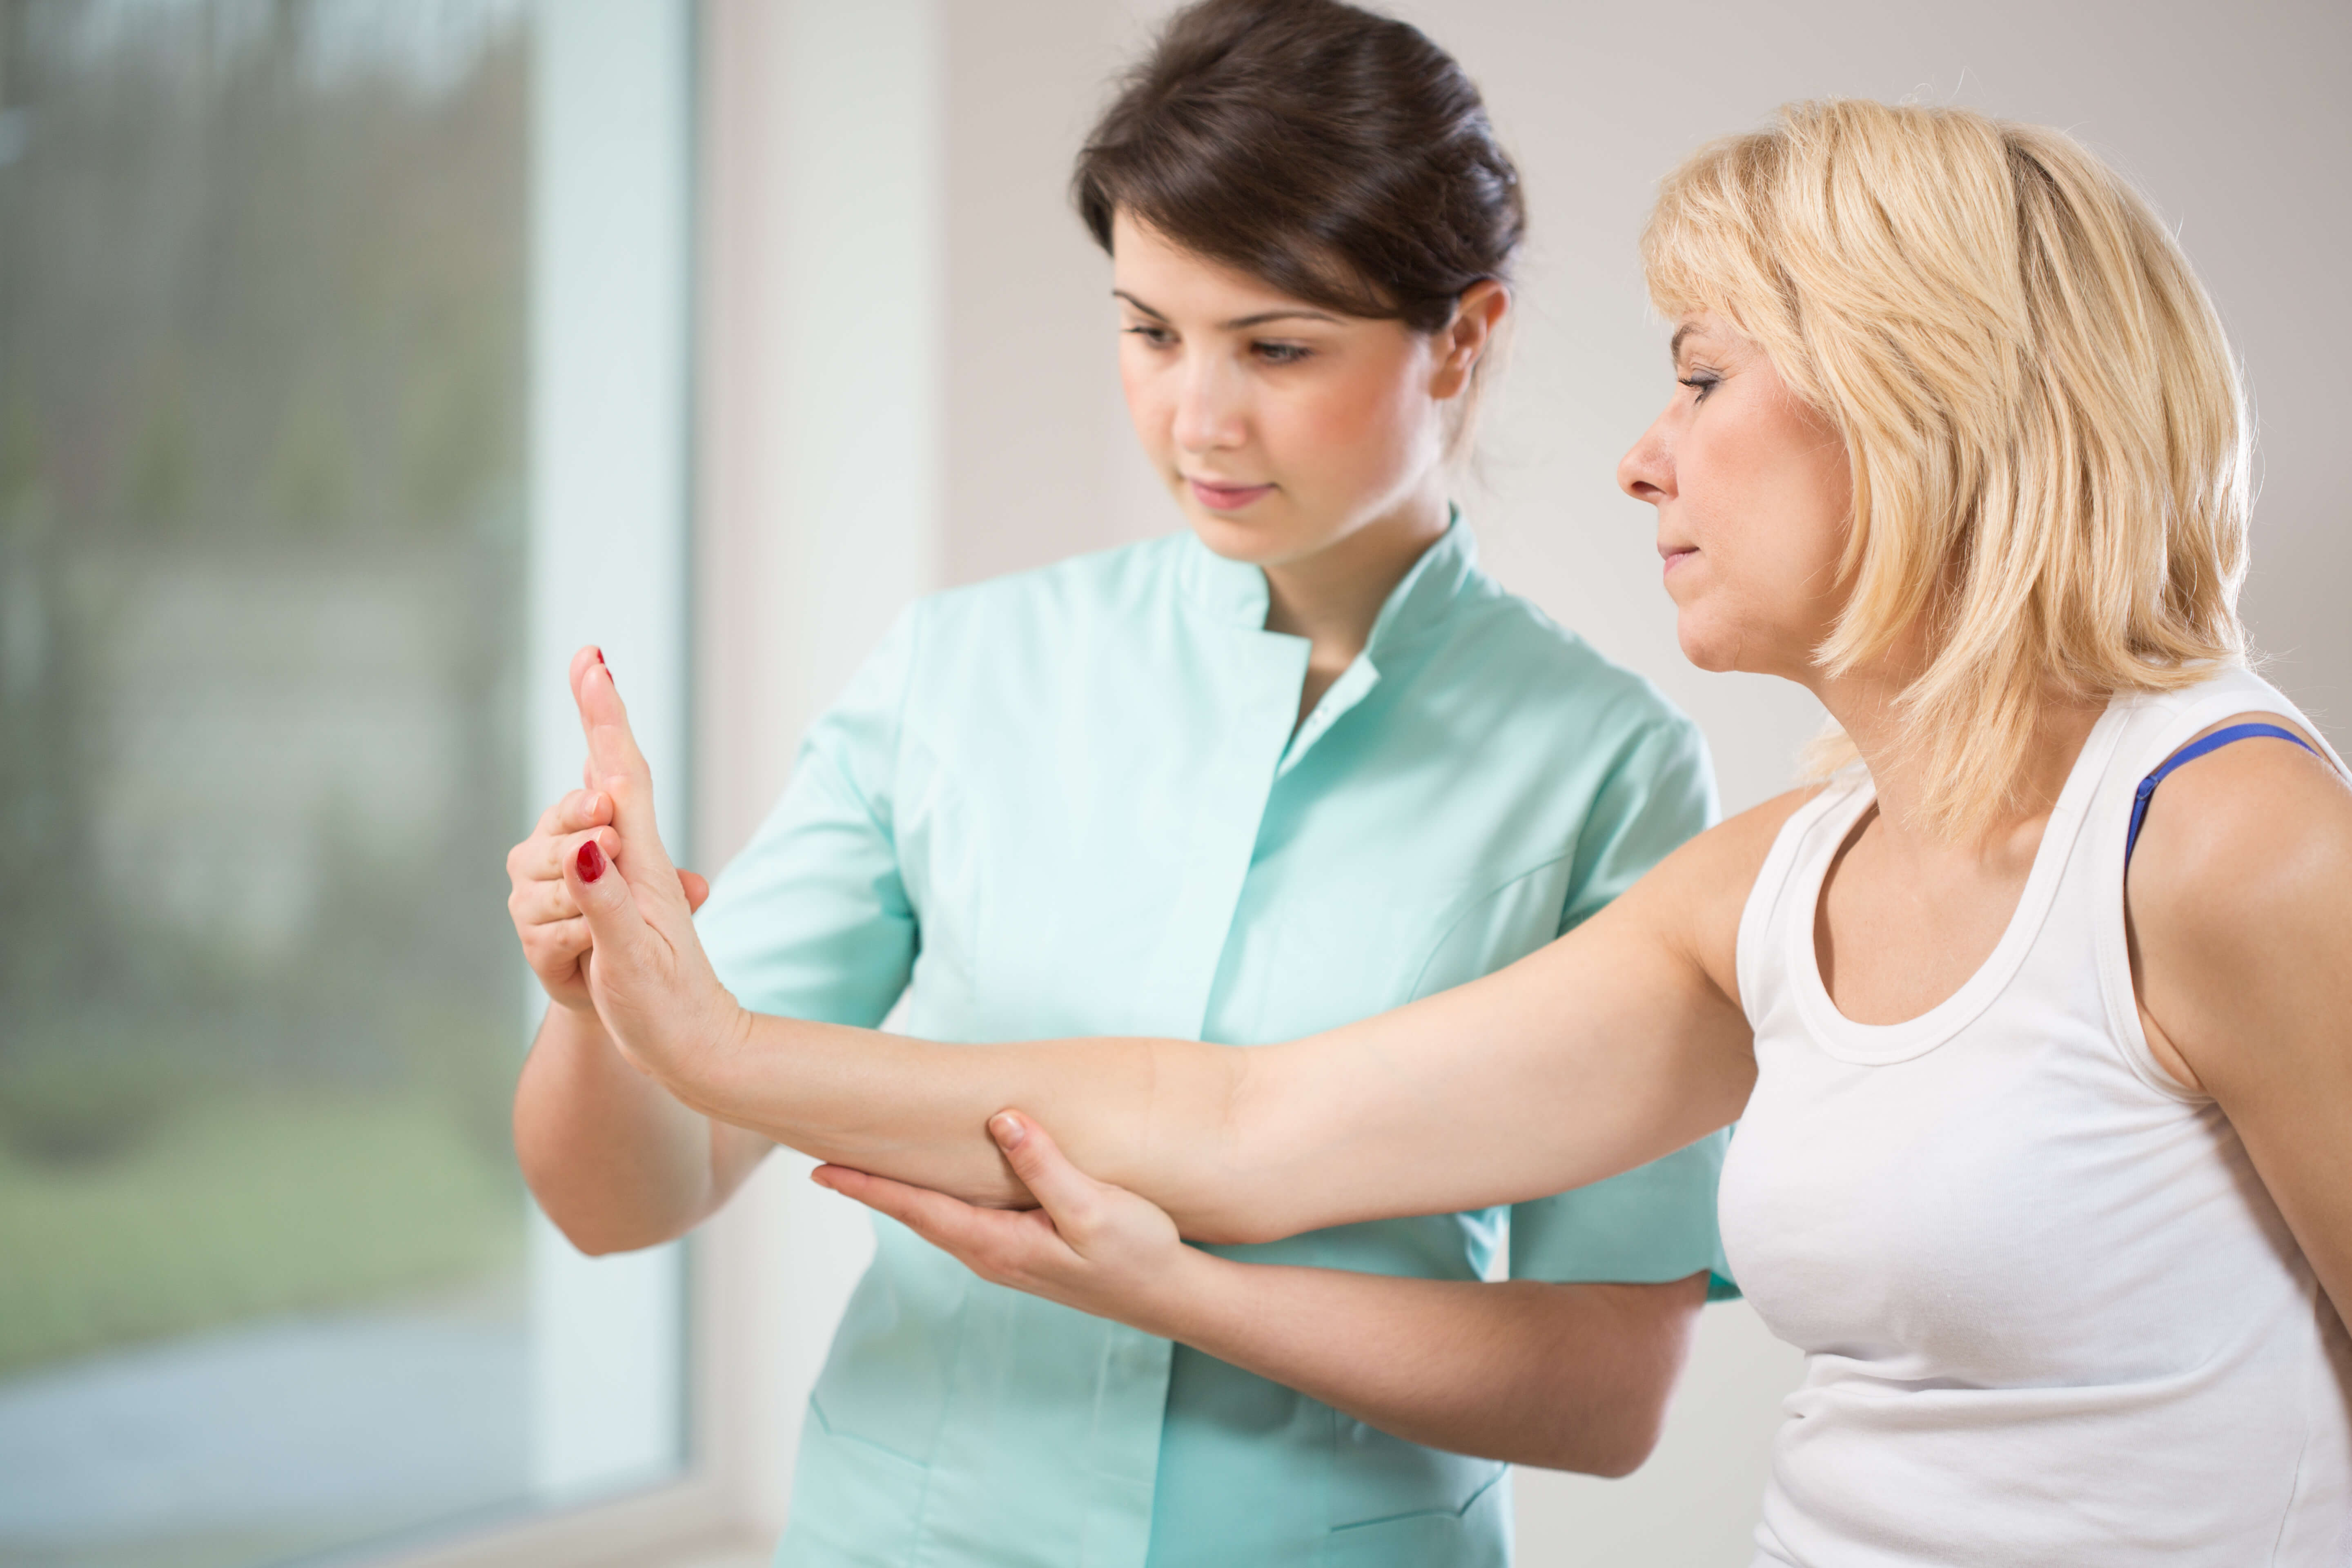 Sports Training for Your Wrist Injury